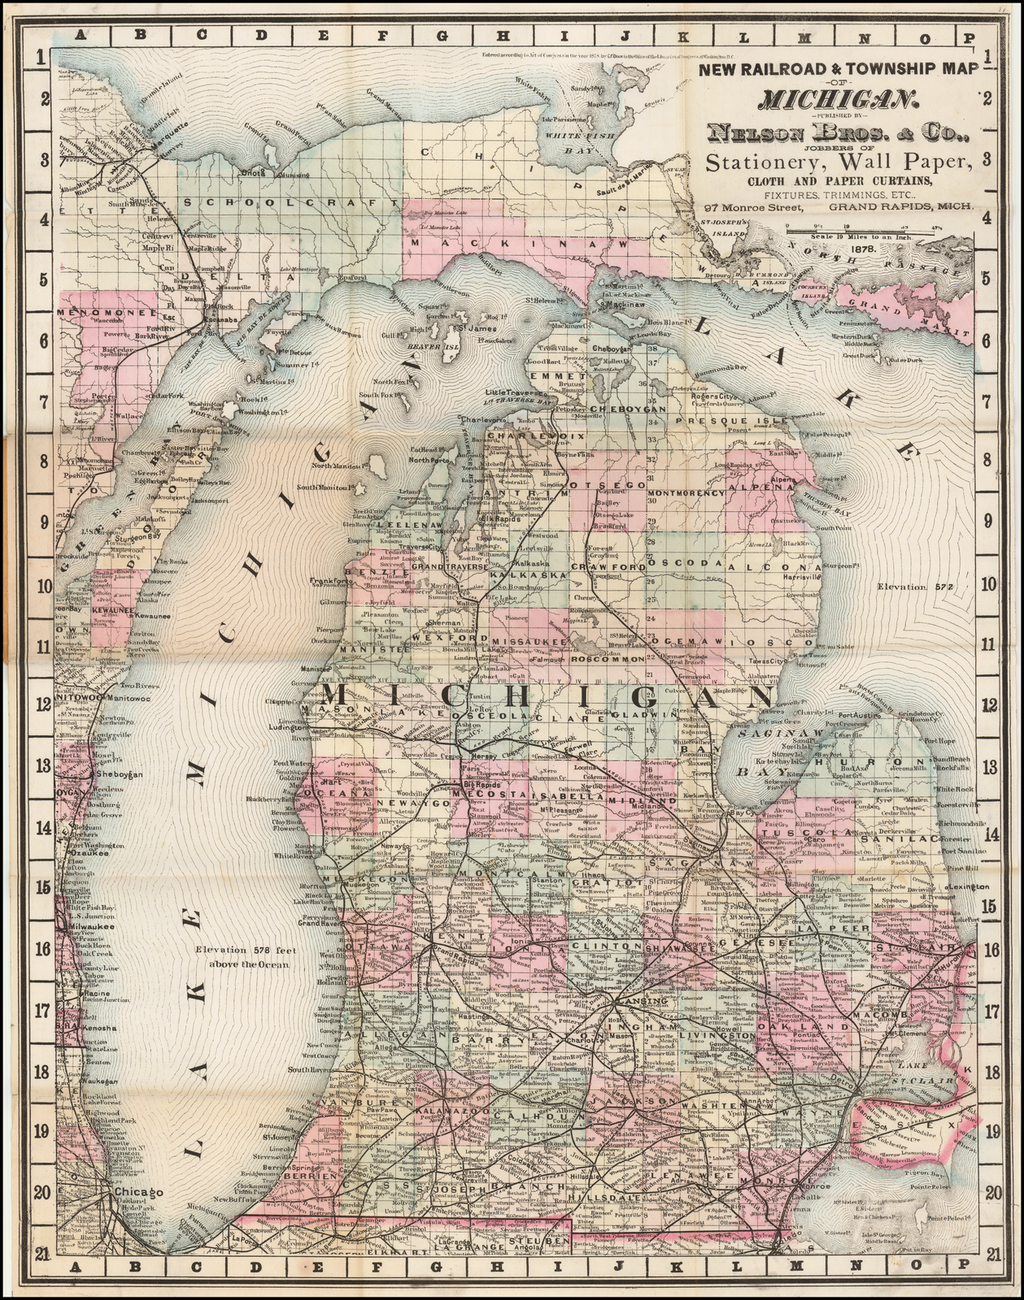 New Railroad & Township Map of MIchigan.  Published By Nelson Bros. & Co., Jobbers of Staionery, Wall Paper, Cloth and Paper Curtain . . .  Grand Rapids, Mich. By